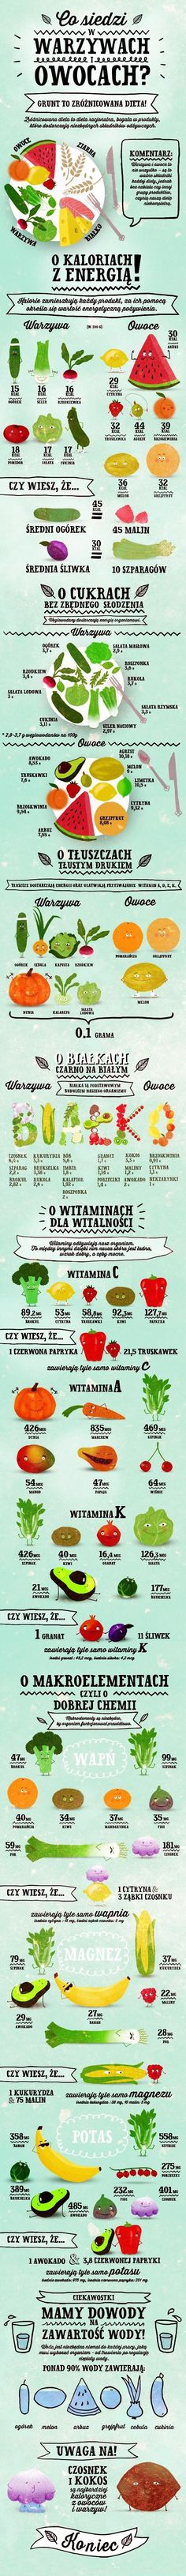 Co siedzi w owocach i warzywach Healthy Tips, Healthy Eating, Healthy Recipes, Health Diet, Health Fitness, Food Facts, Healthier You, No Carb Diets, Clean Recipes